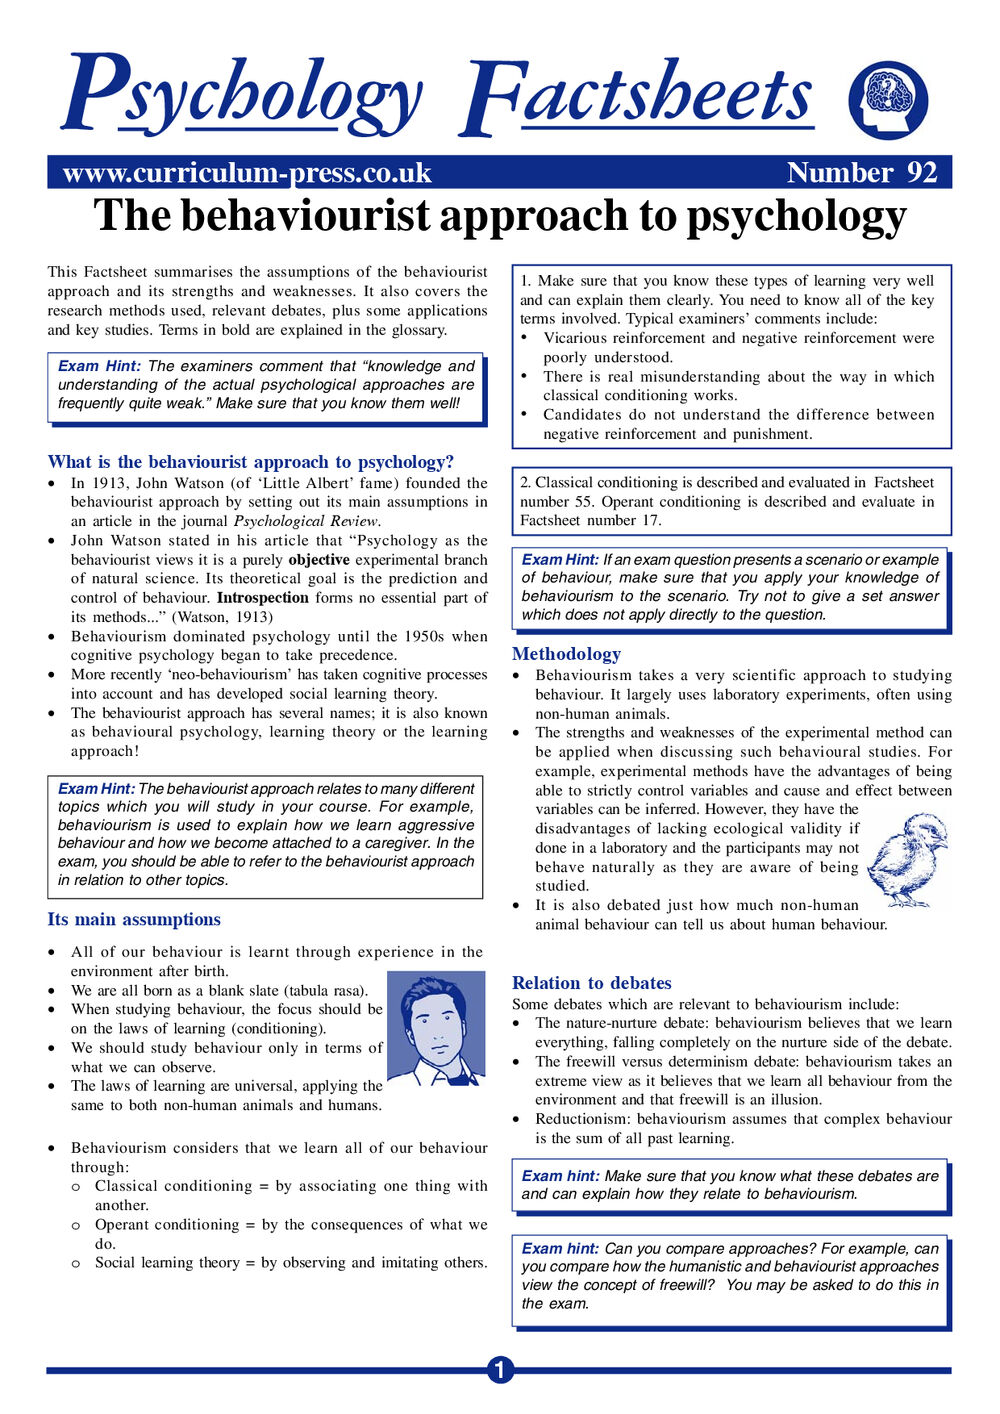 92 Behaviourist Approach